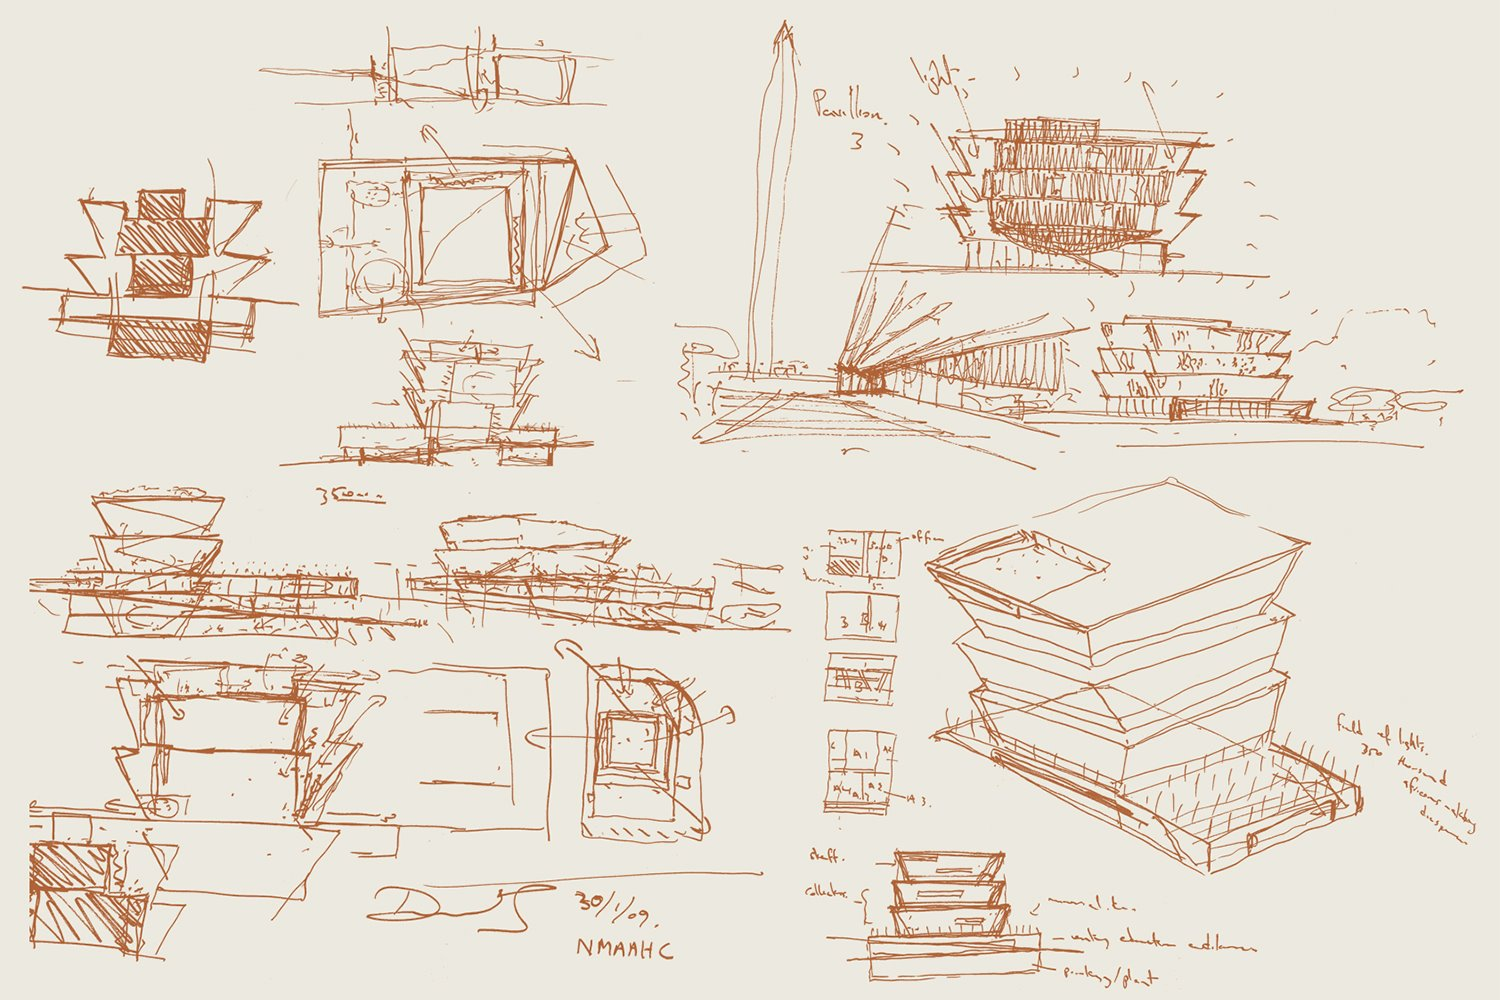 design miami David Adjaye Smithsonian Sketch 16x22 inches copper ink on paper $1,000